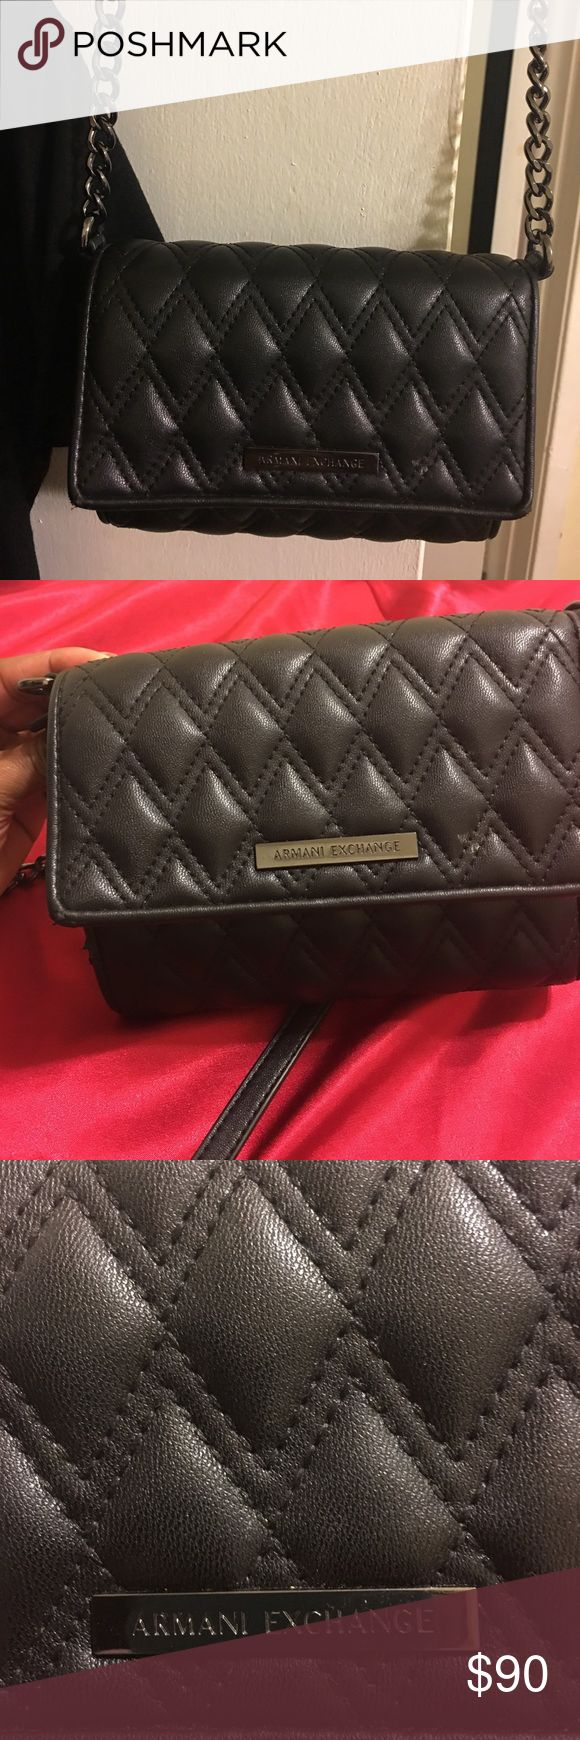 Authentic Armani Exchange Soft Leather Purse Small Like New Black Armani Exchange Purse.  Soft, Genuine Learher.  Beautiful and Like New! A/X Armani Exchange Bags Mini Bags